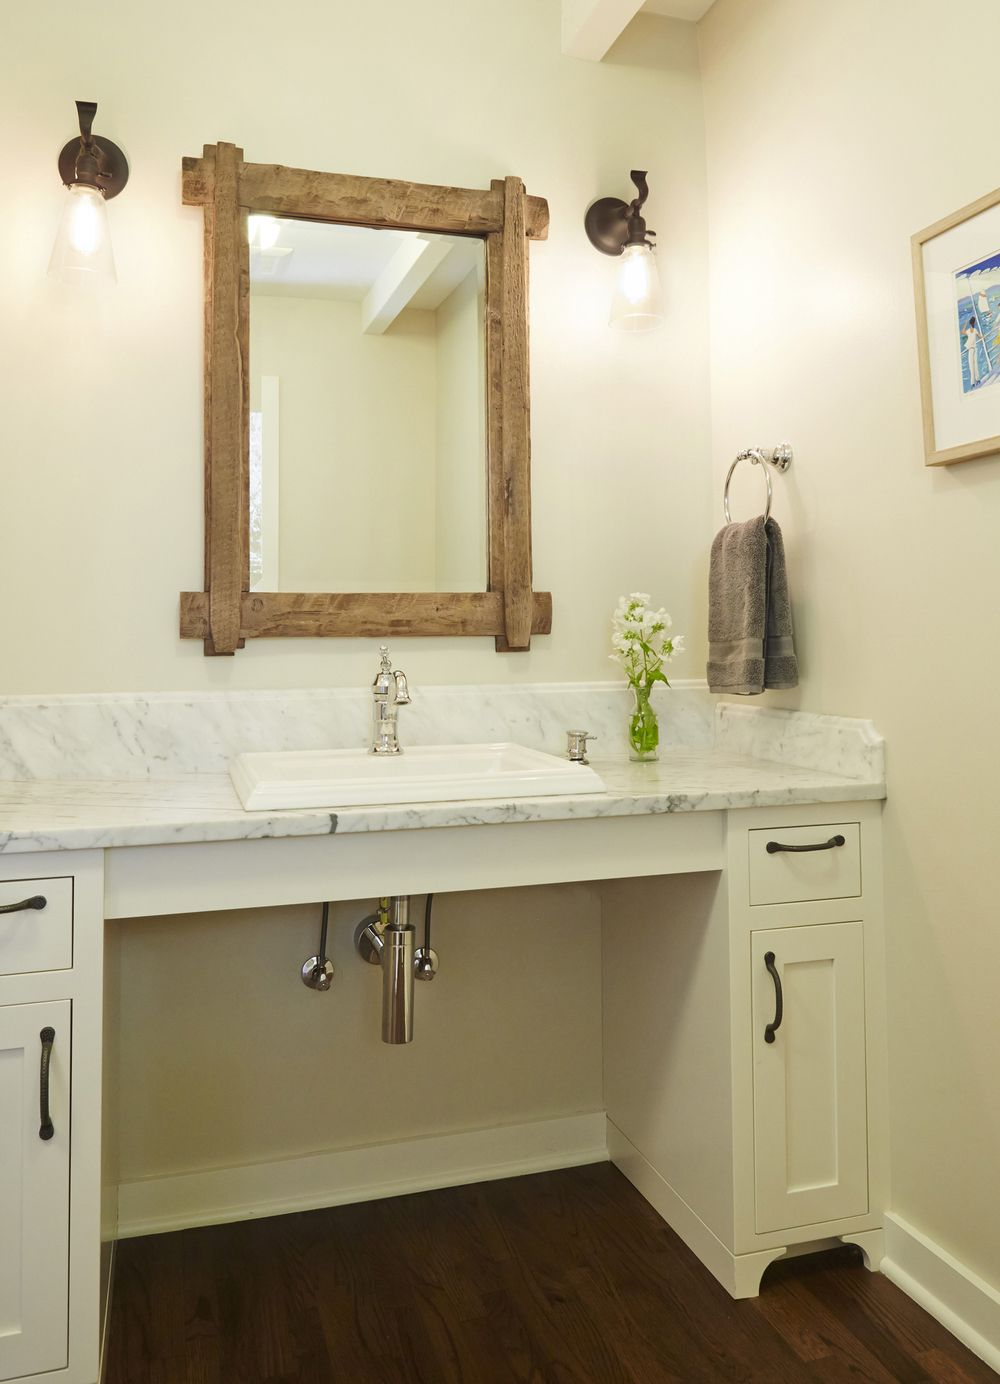 Custom Cabinets For Wheelchair Accessible Sink Rom Architecture